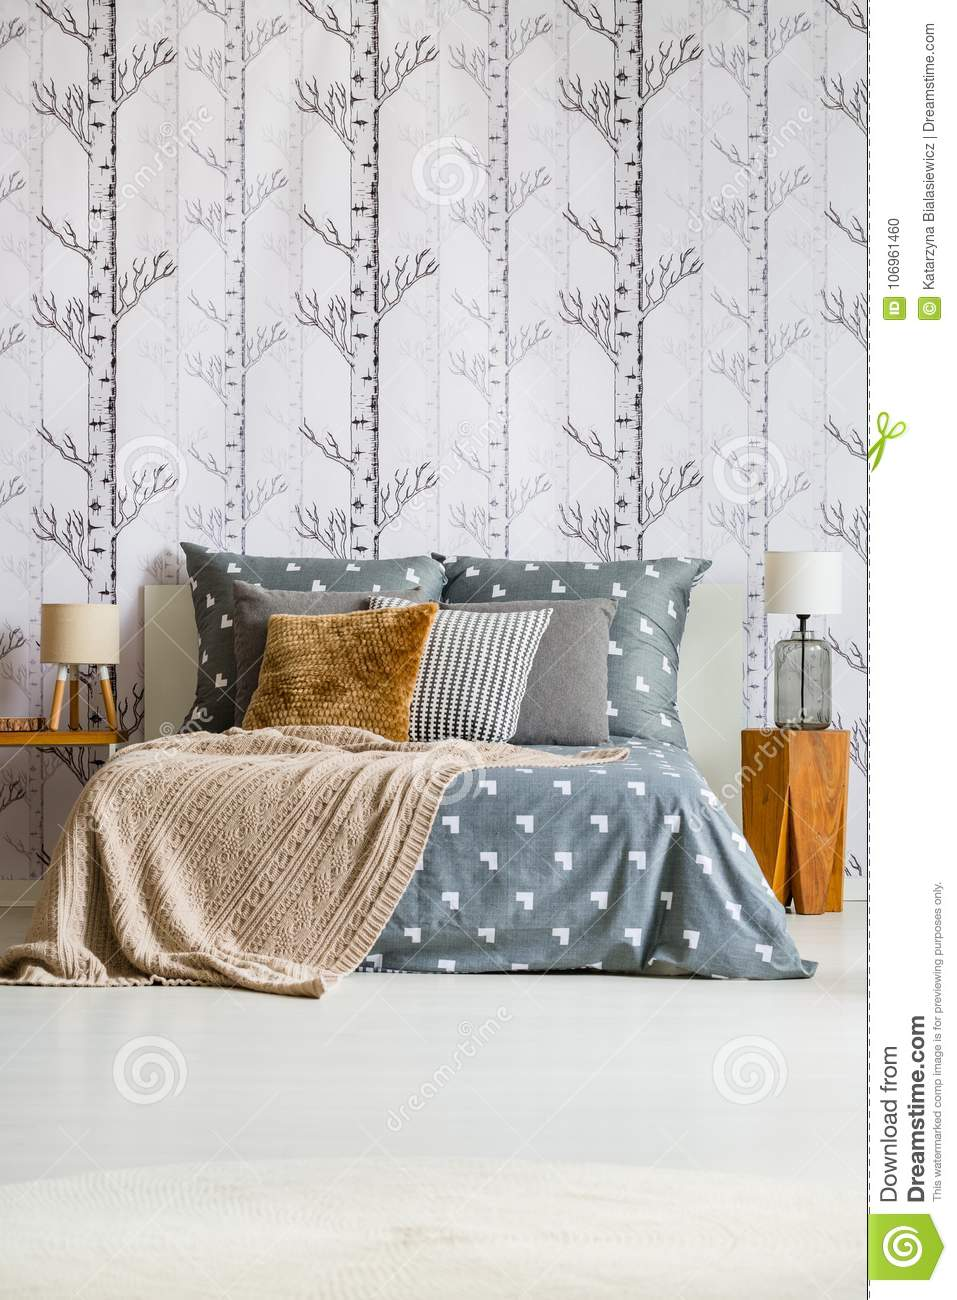 Charmant Forest Wallpaper In Bright Bedroom